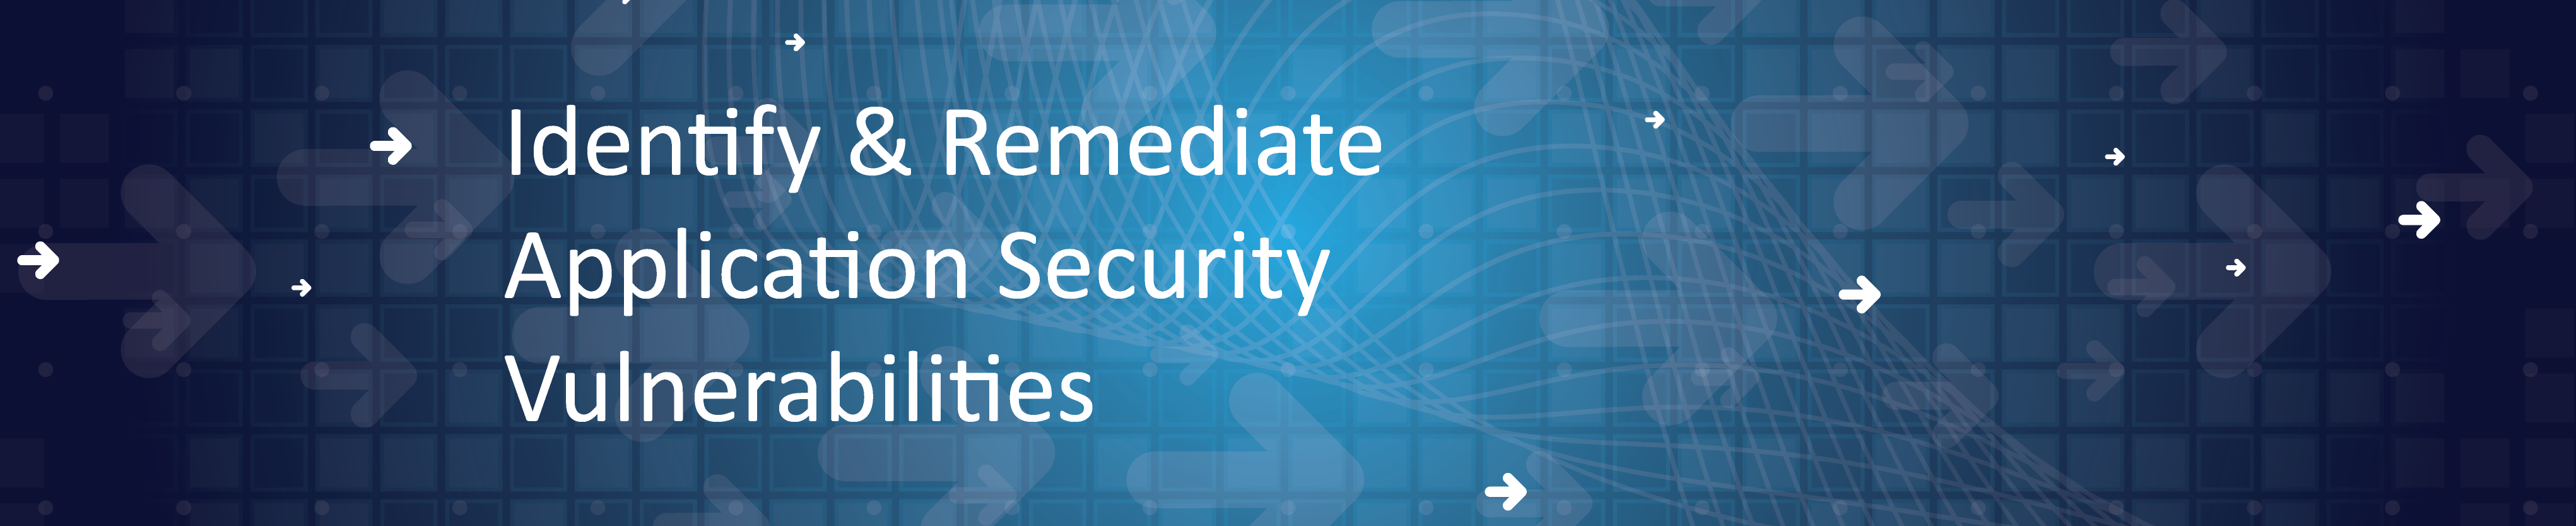 Identify and Remediate Application Security Vulnerabilities Header-1-10